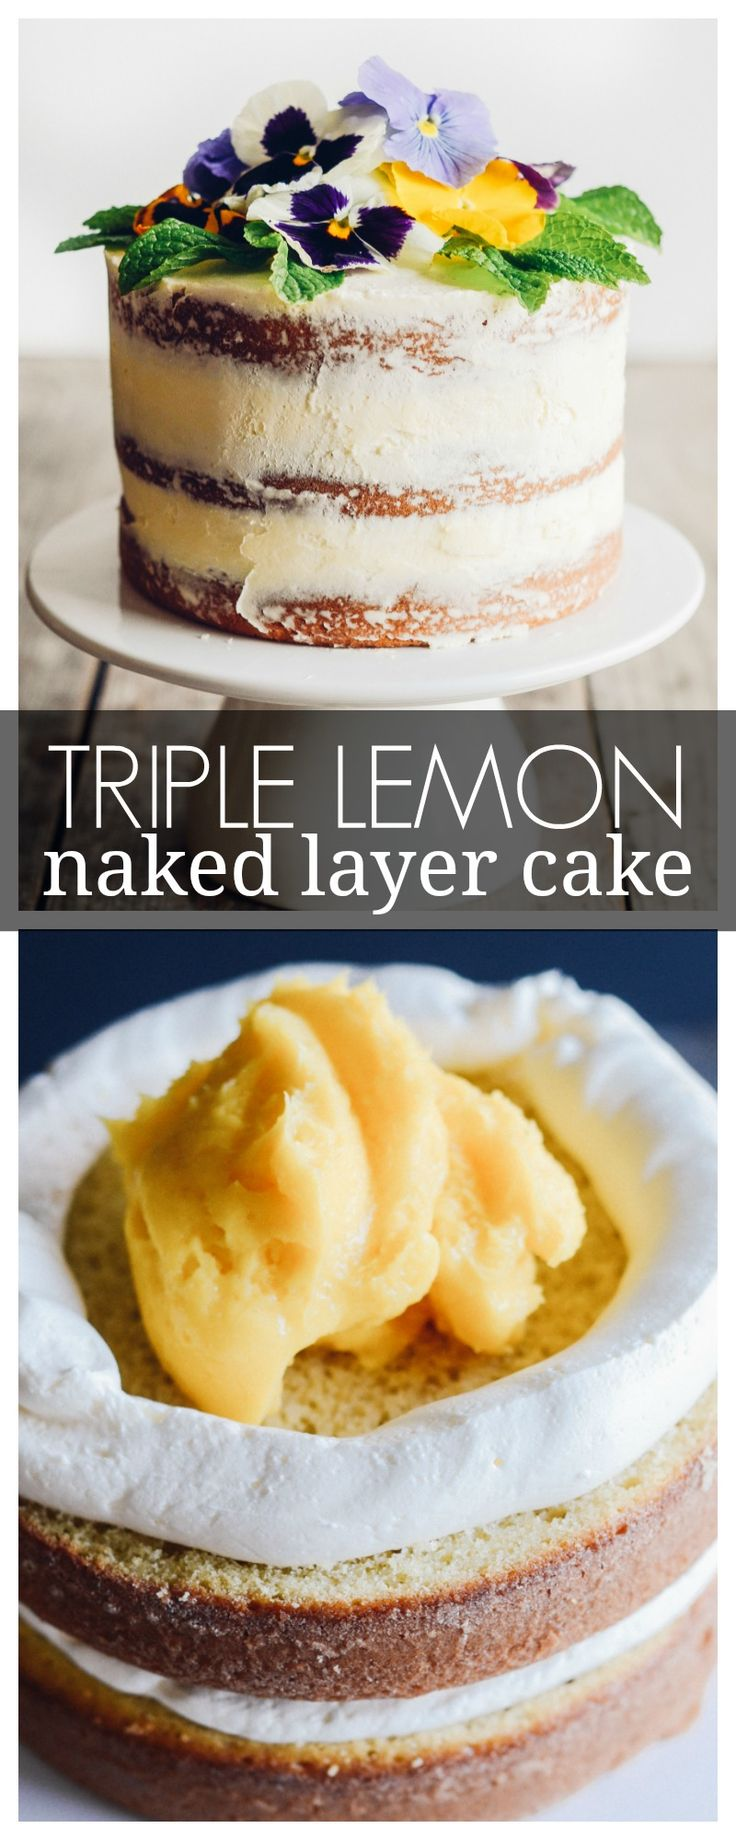 lemon wedding cake filling recipe 142 best wedding cakes images on baking 16805